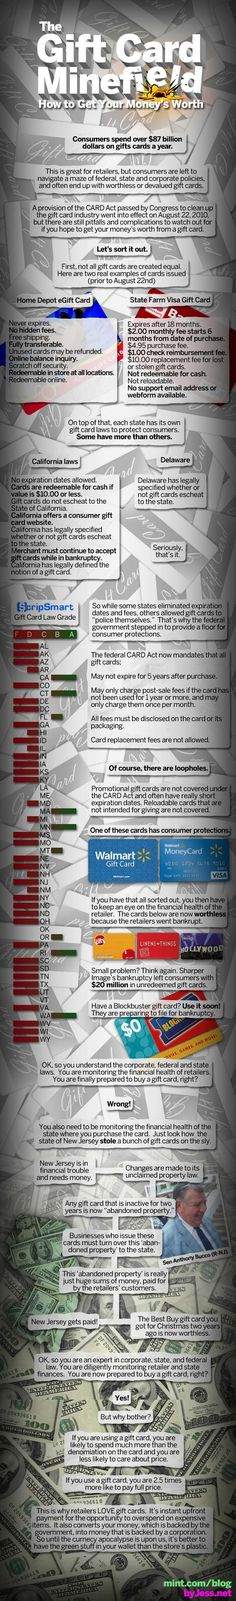 Not all gift cards are created equal. (This was pretty interesting!)